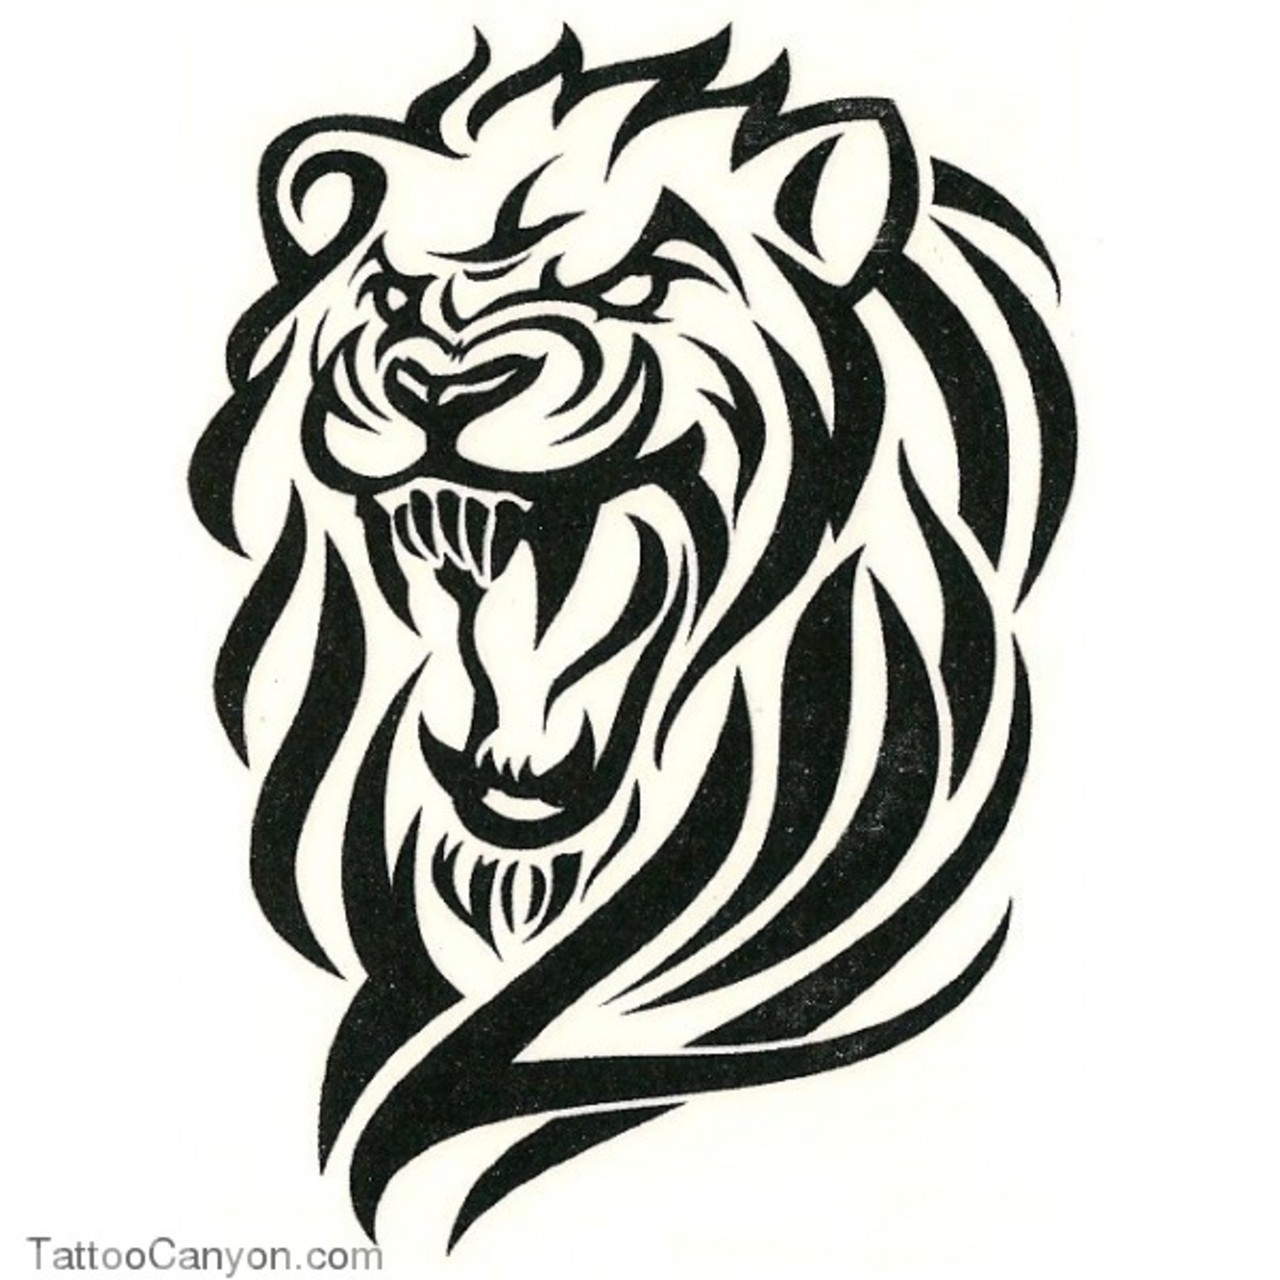 1280x1280 Collection Of Tribal Angry Lion Face Tattoo Design